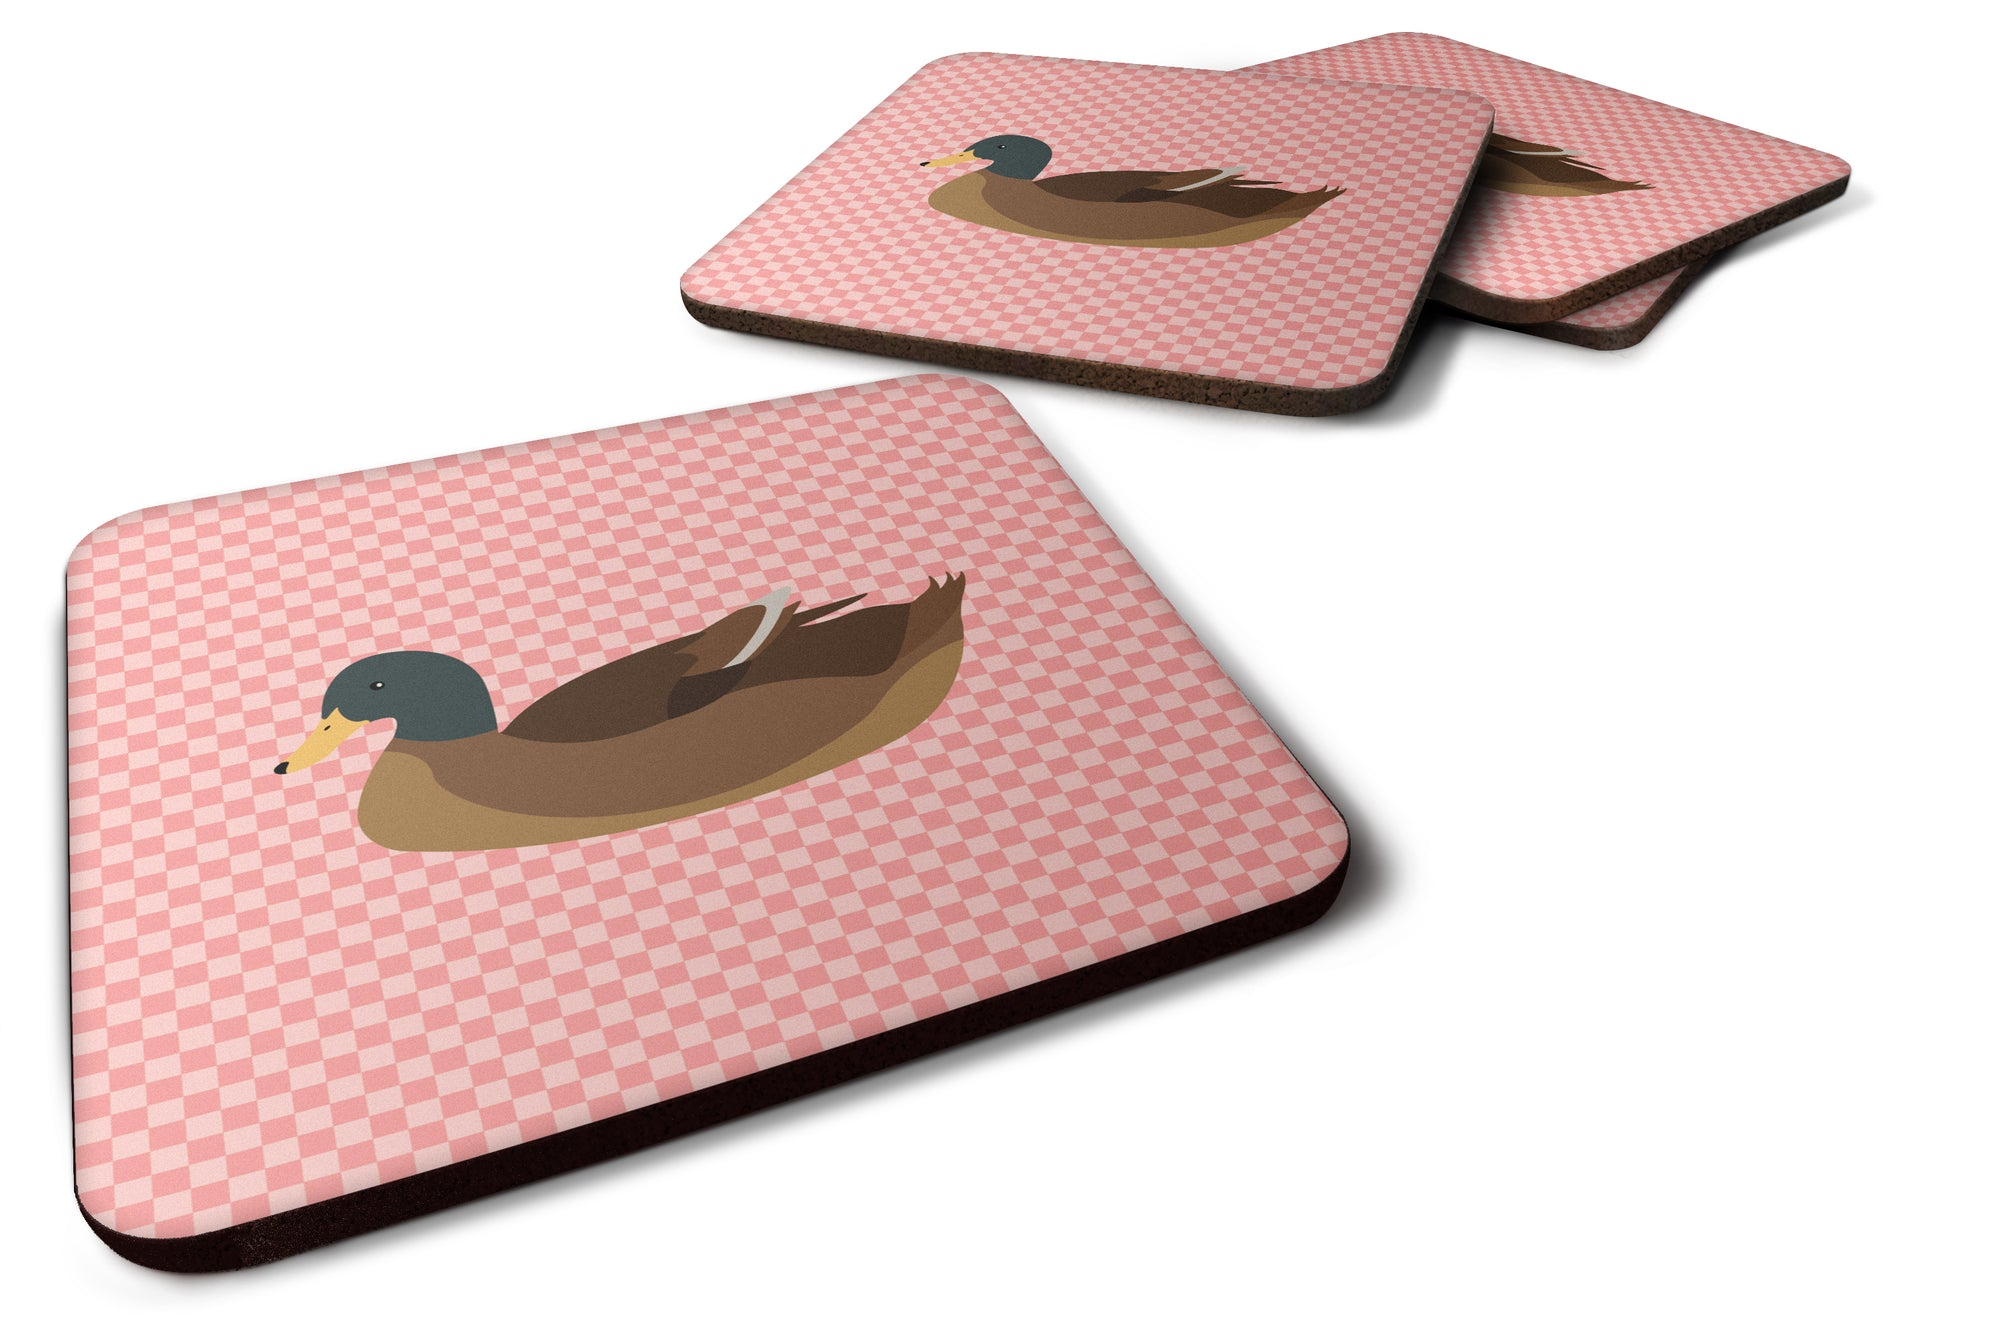 Khaki Campbell Duck Pink Check Foam Coaster Set of 4 BB7866FC by Caroline's Treasures